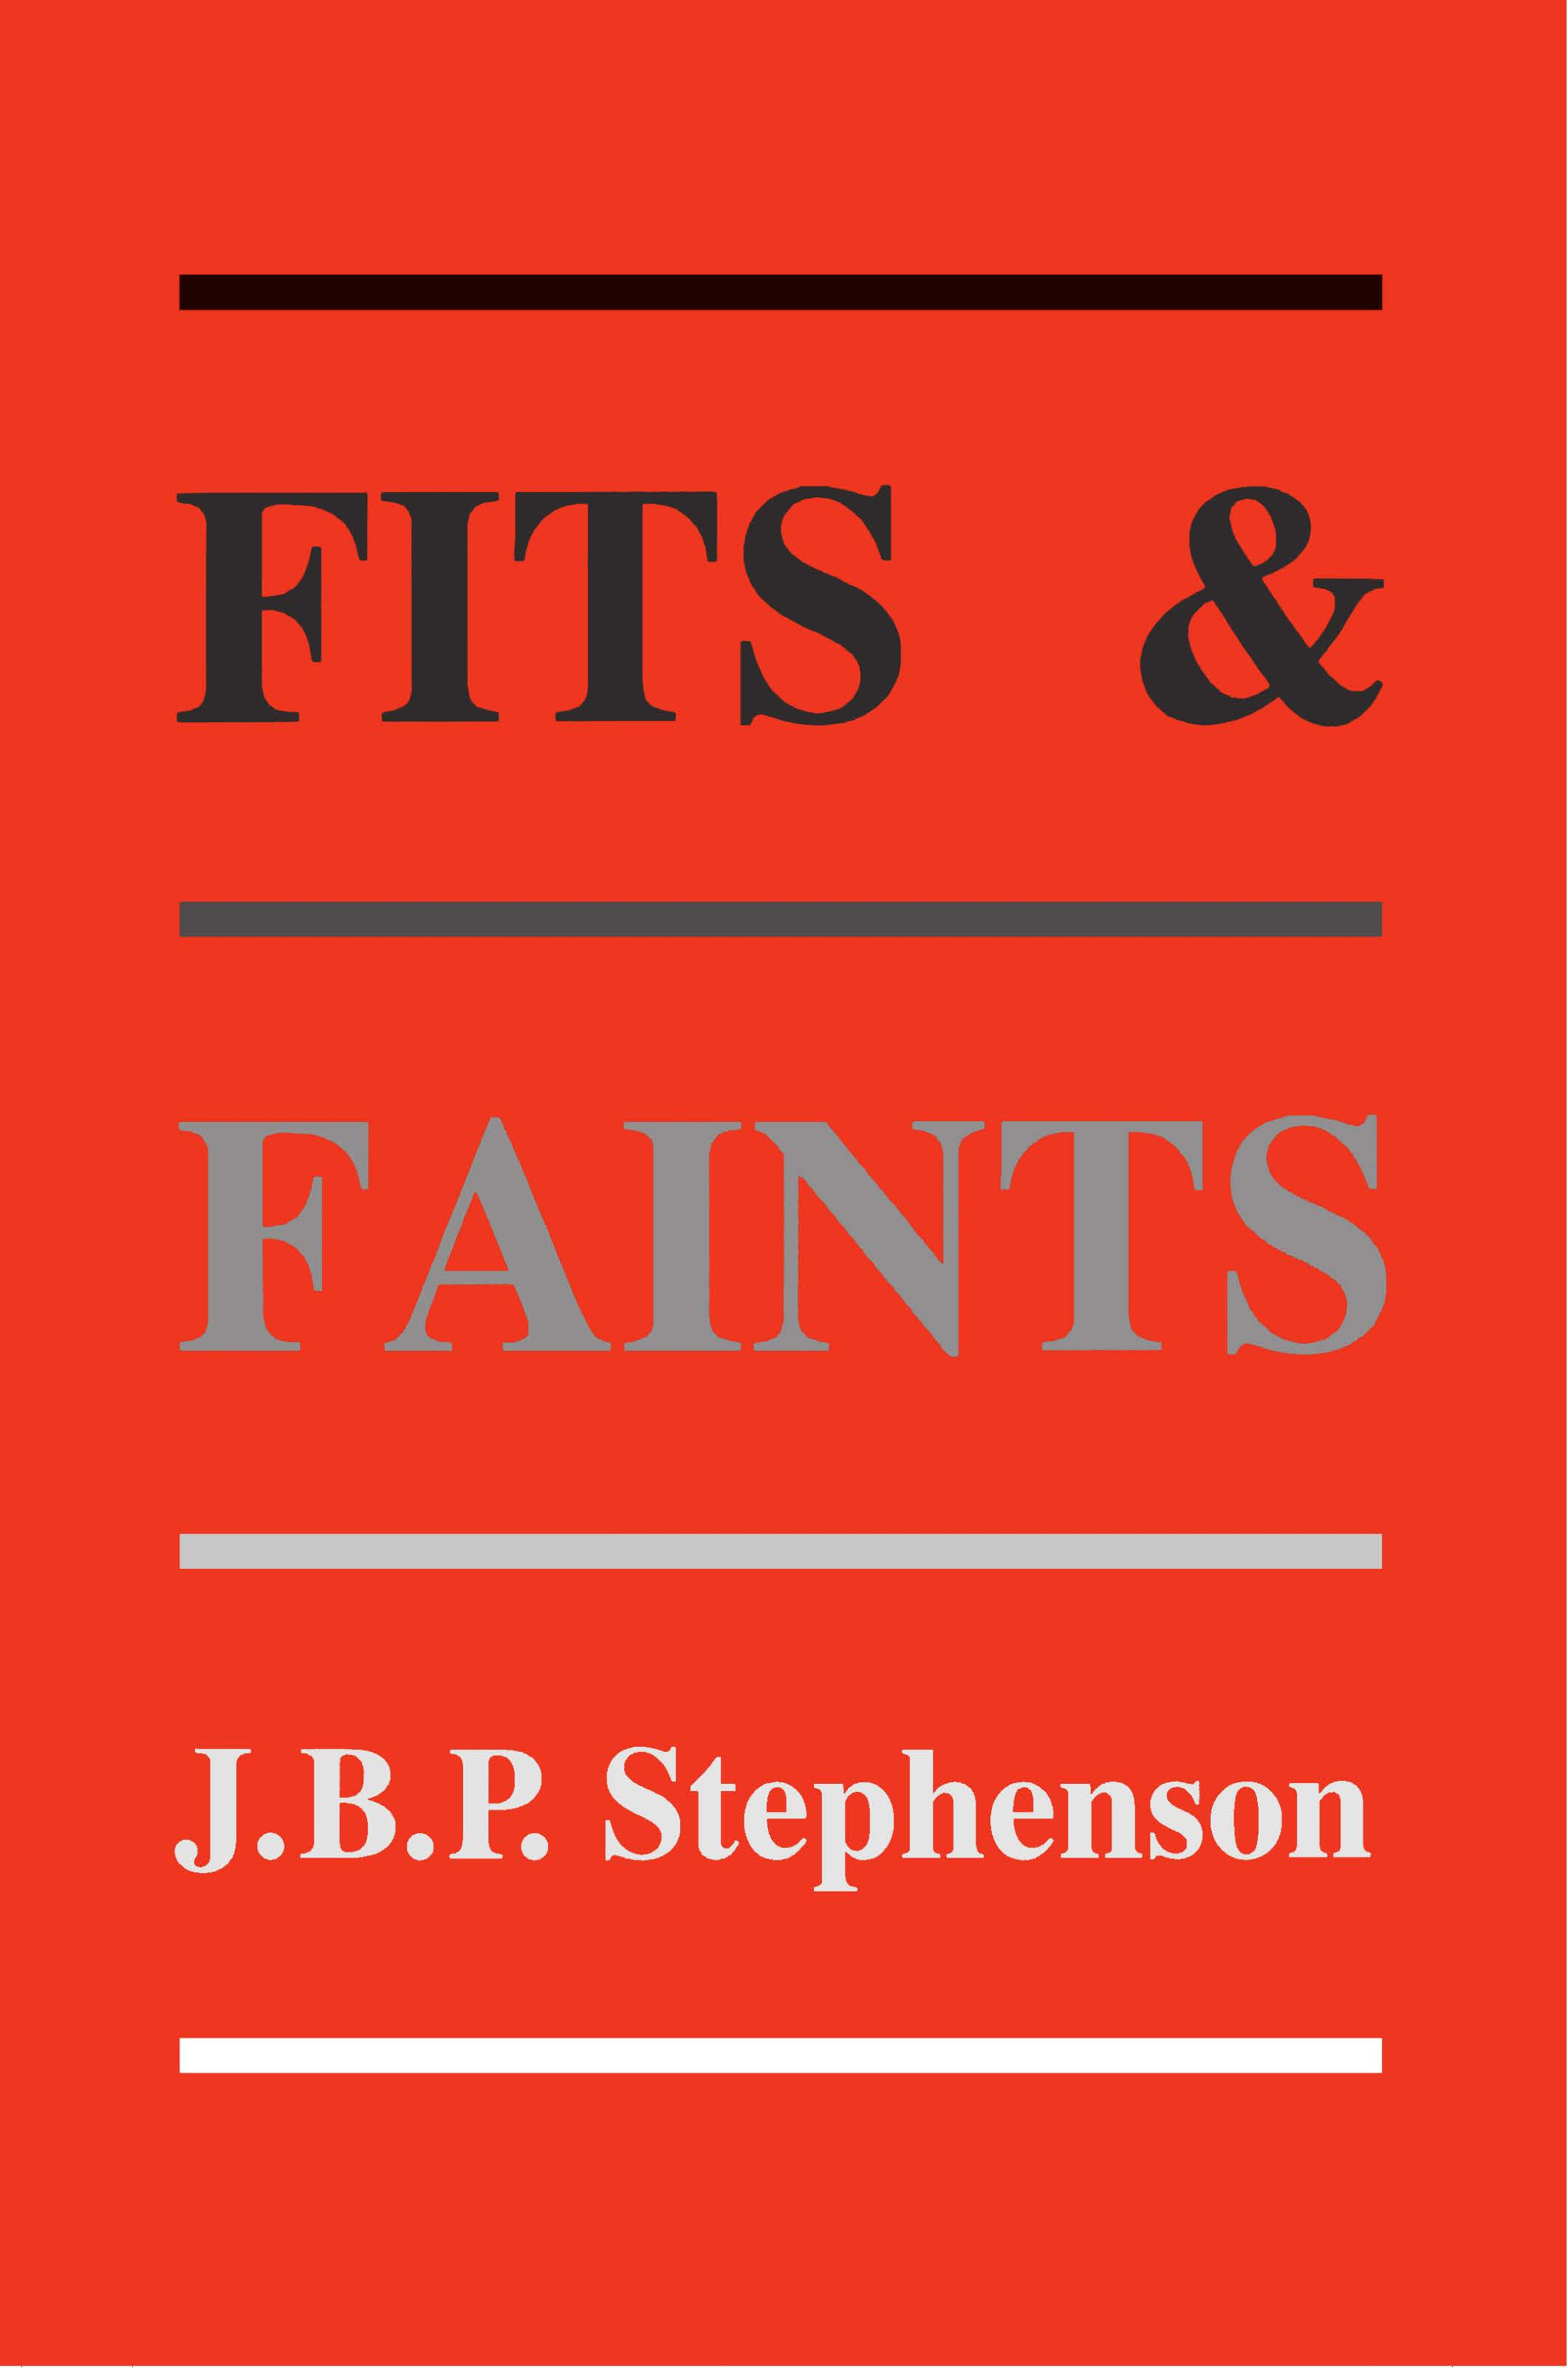 Fits & Faints, Stephenson CDM 109